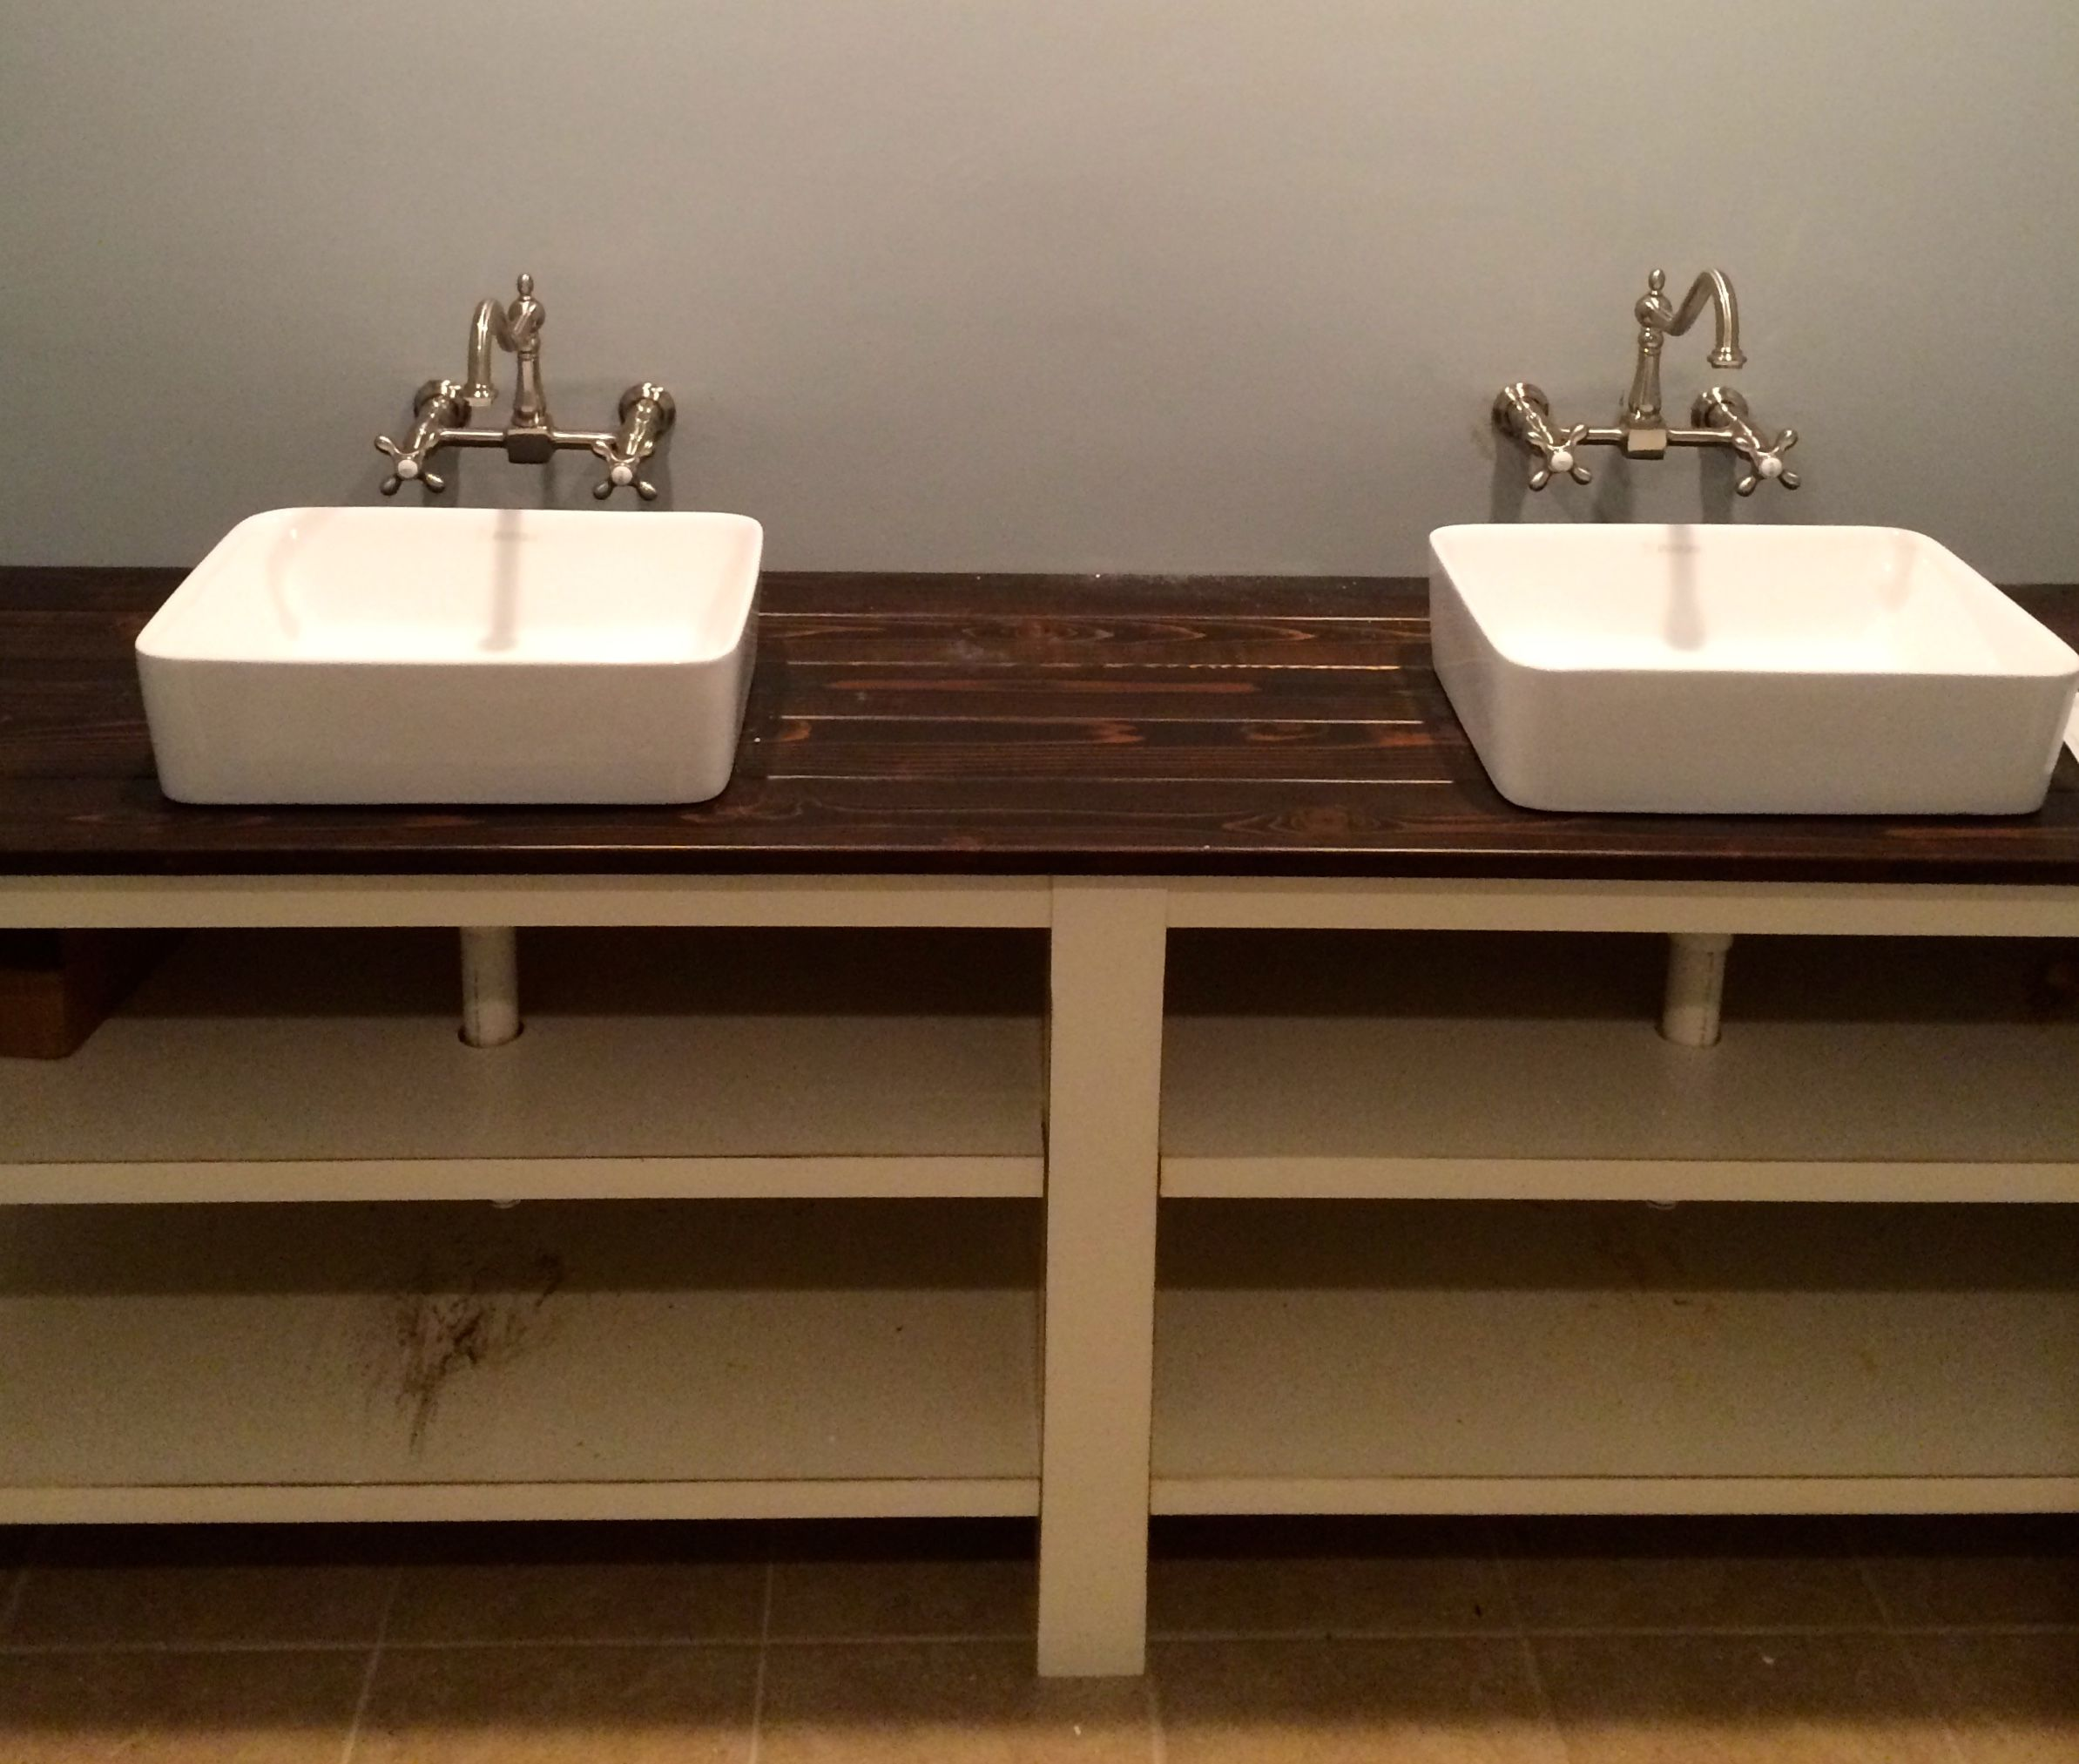 Custom Bathroom Vanities Naperville a bathroom vanity made out of a stained cedar plank countertop and